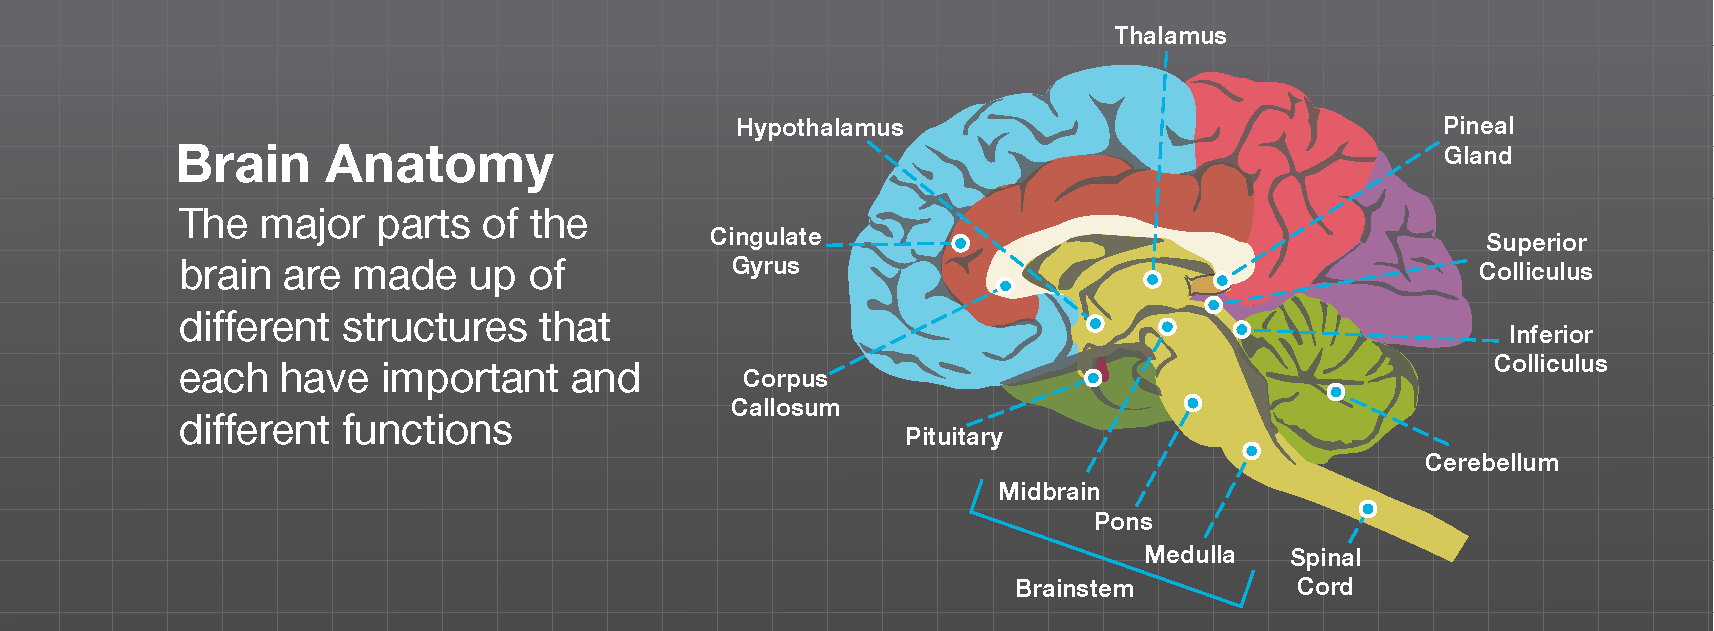 Brain Anatomy Brainlab